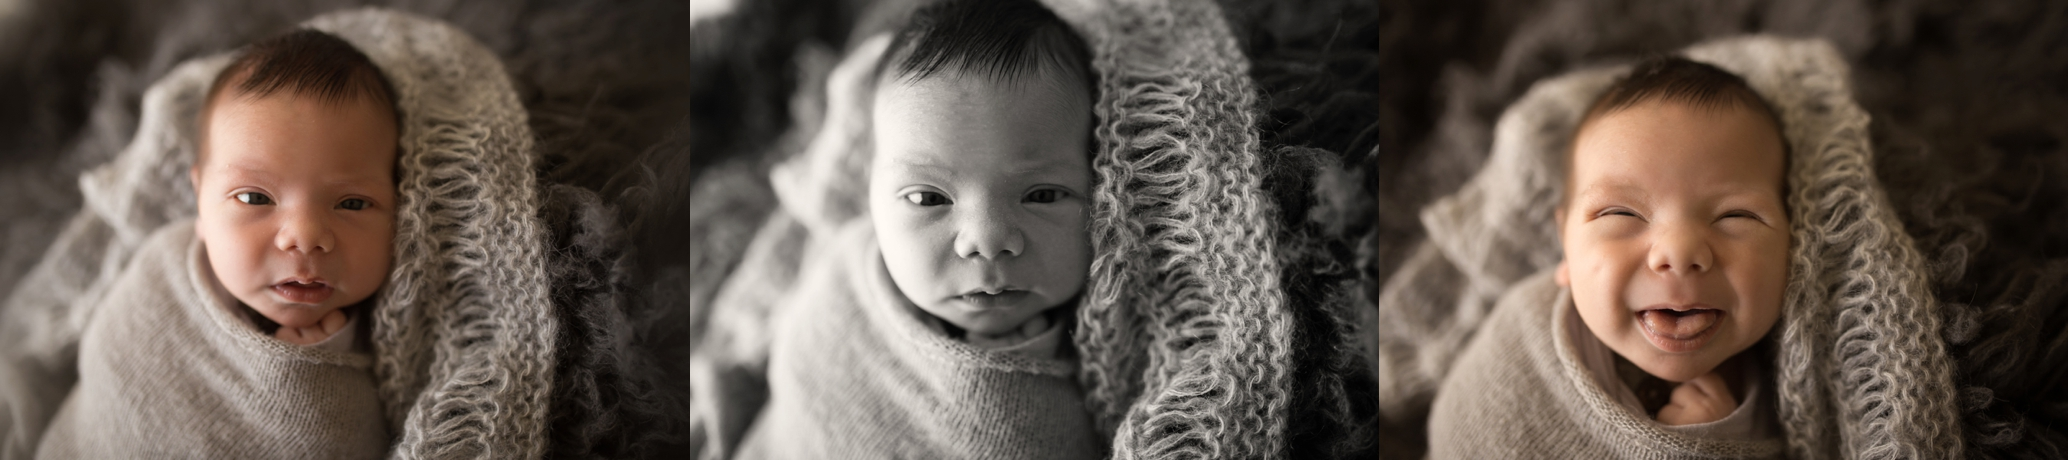 newborn Photos Geelong_1661.jpg